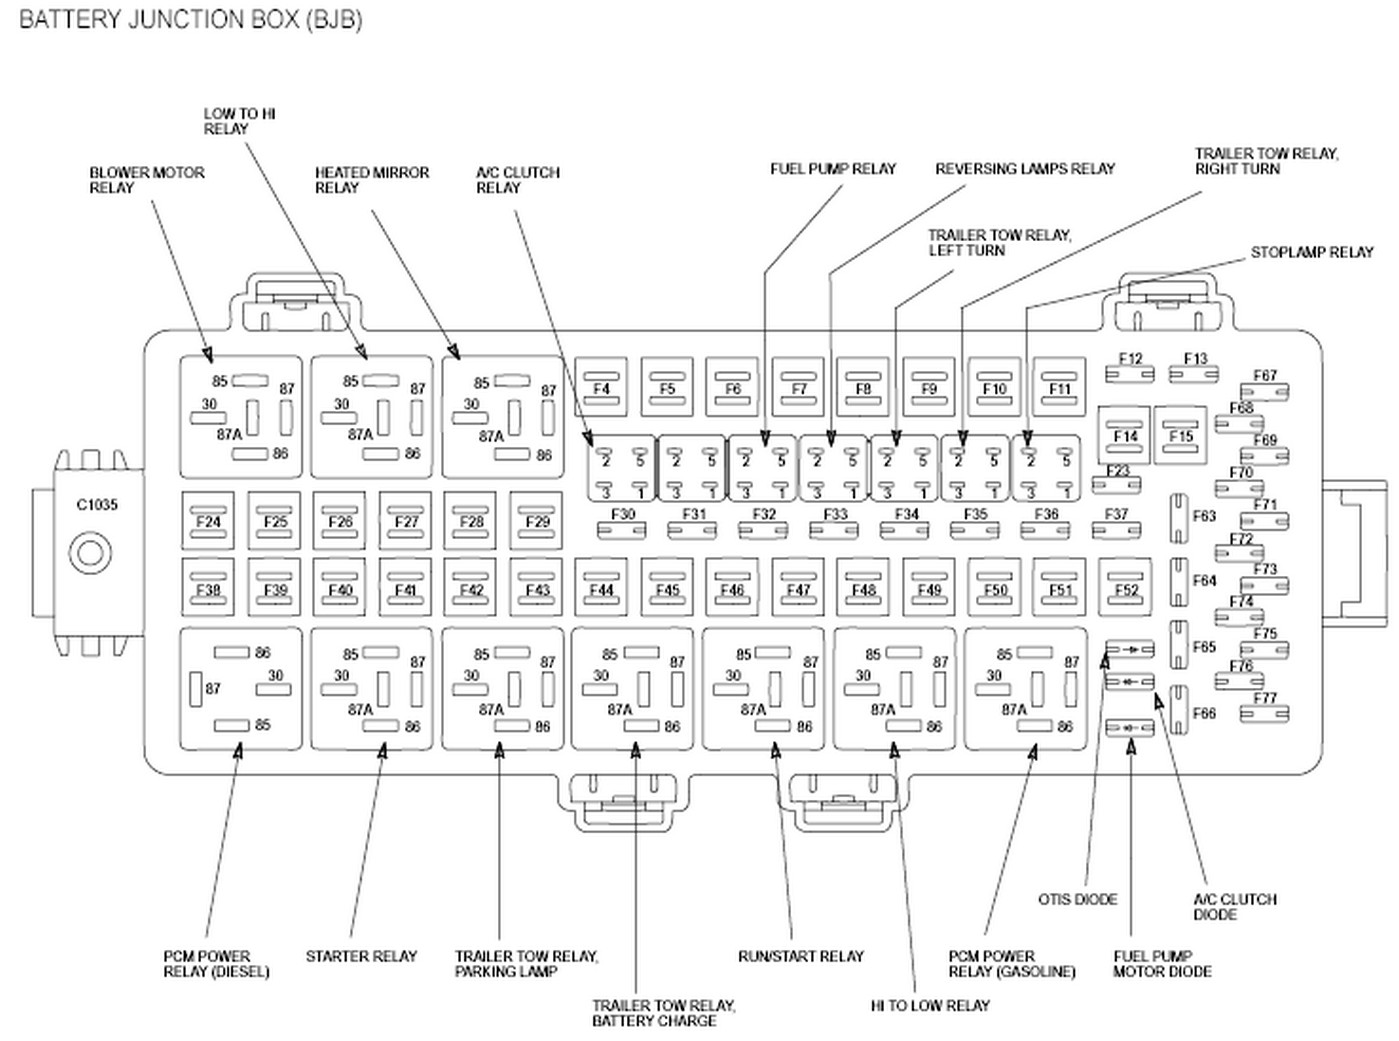 Ford 450 Fuse Box Wiring Diagram Explained 2012 Mustang Super Duty Schematic Data 2010 Taurus